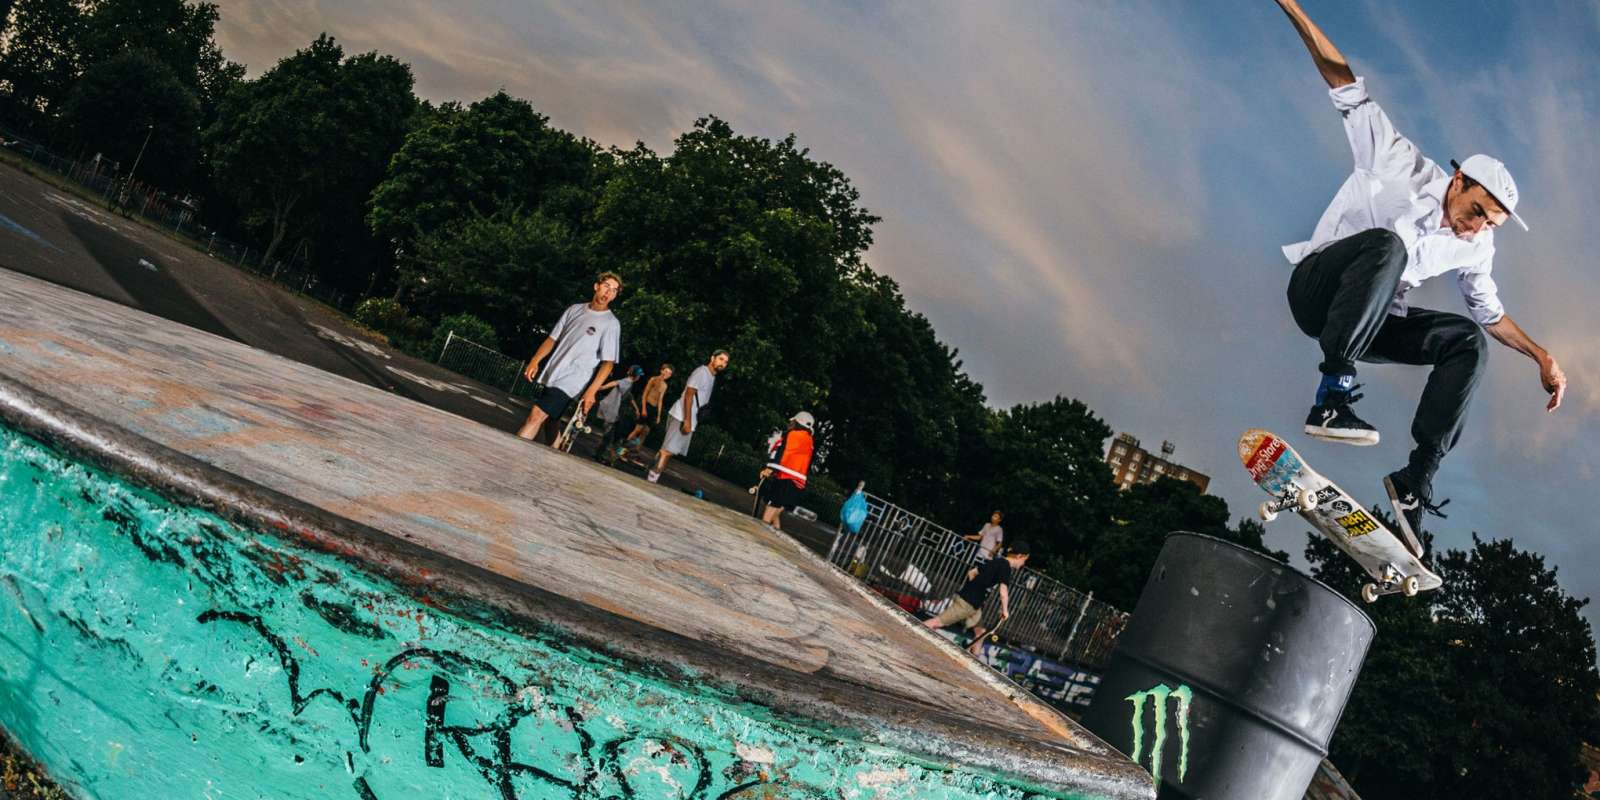 Photos of Go Skateboarding Day in Bristol shot by James Griffiths